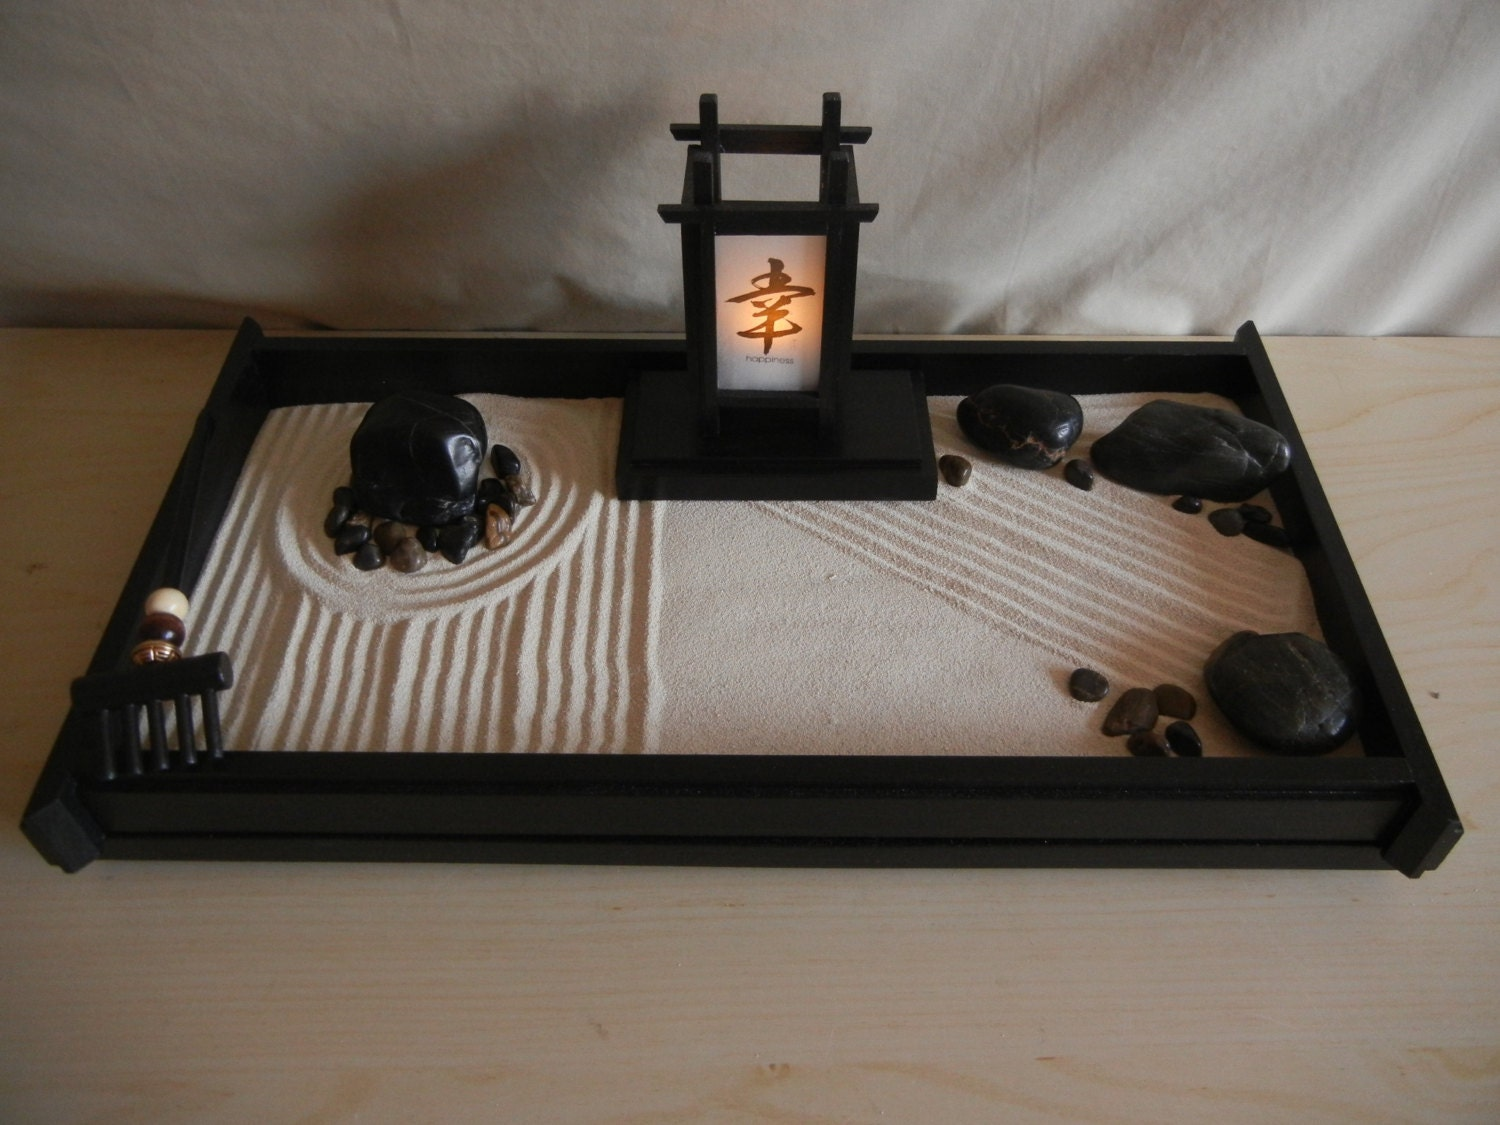 l 05 large desk or table top zen garden with japanese lantern